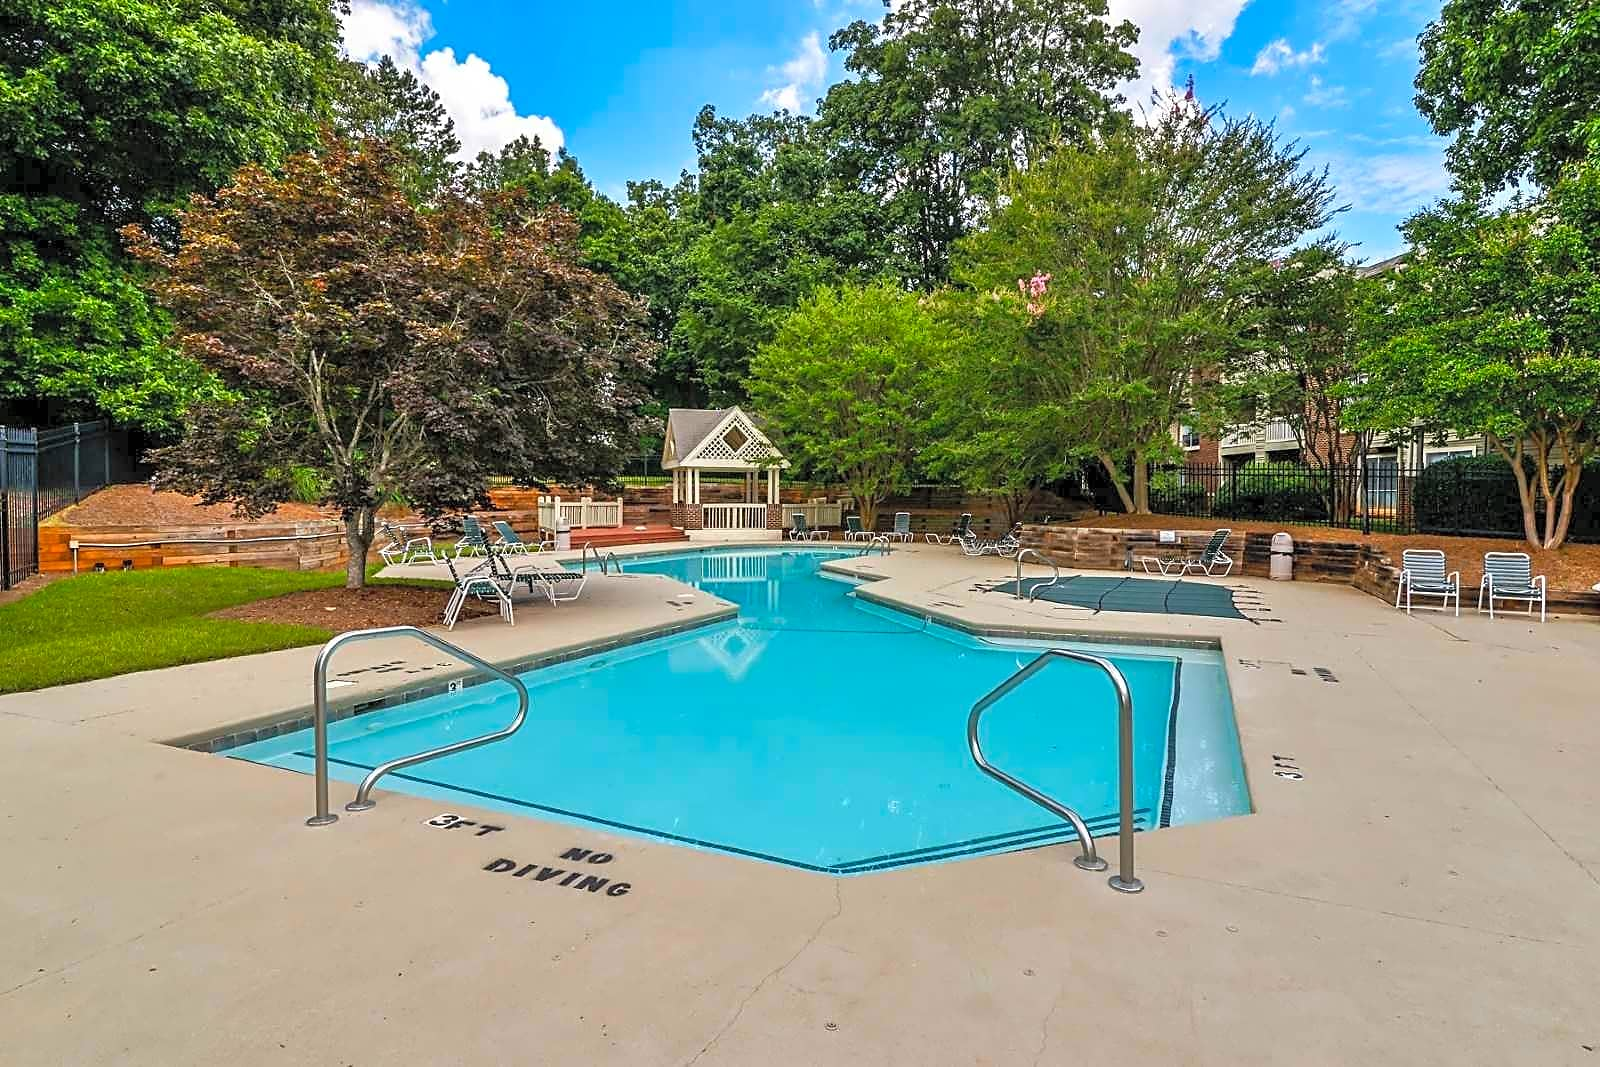 The Oasis At Regal Oaks Apartments Charlotte Nc 28212